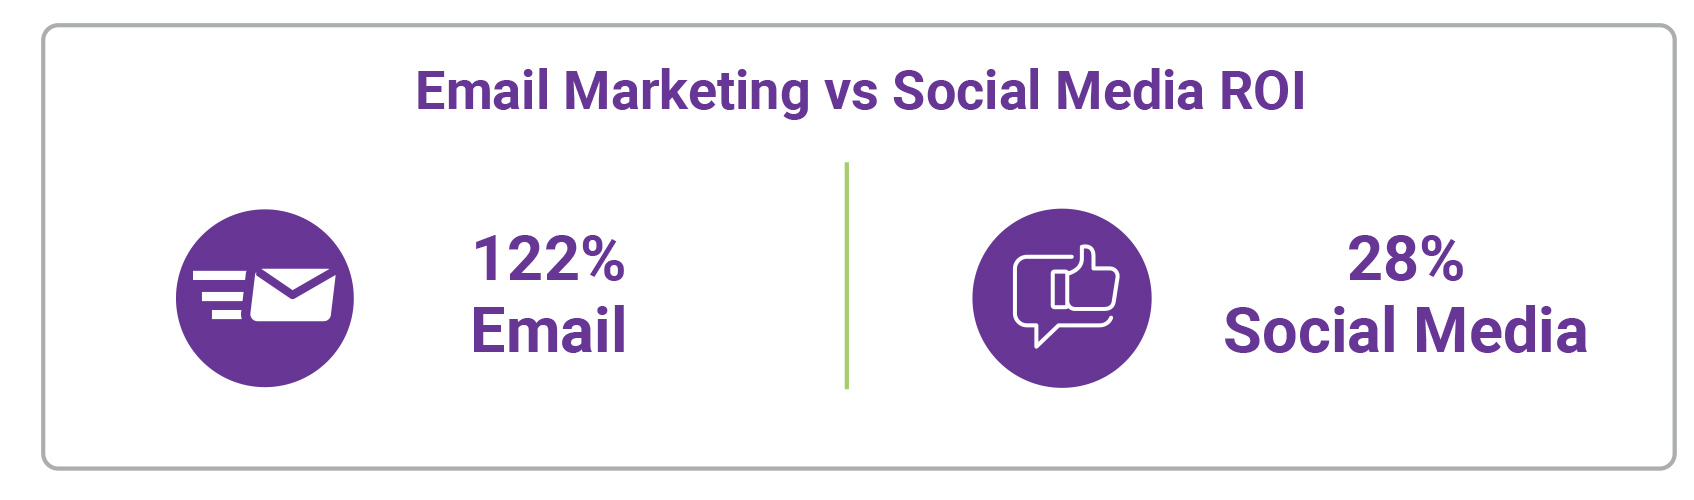 Email-Marketing-Outperforms-Social-Media-5